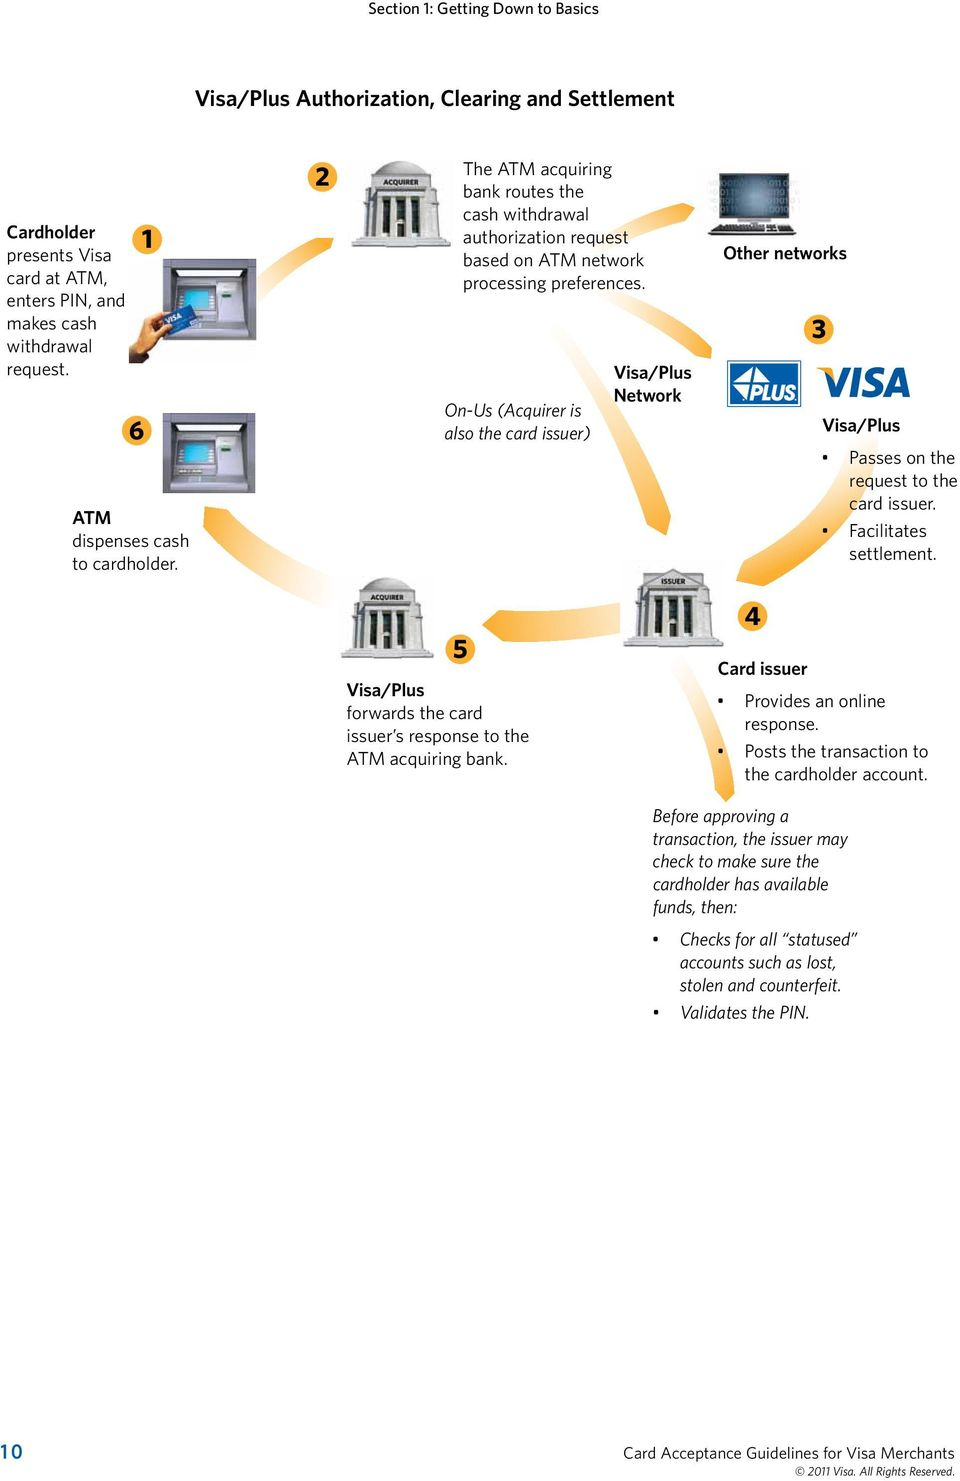 On-Us (Acquirer is also the card issuer) Visa/Plus Network Other networks 3 Visa/Plus Passes on the request to the card issuer. Facilitates settlement.